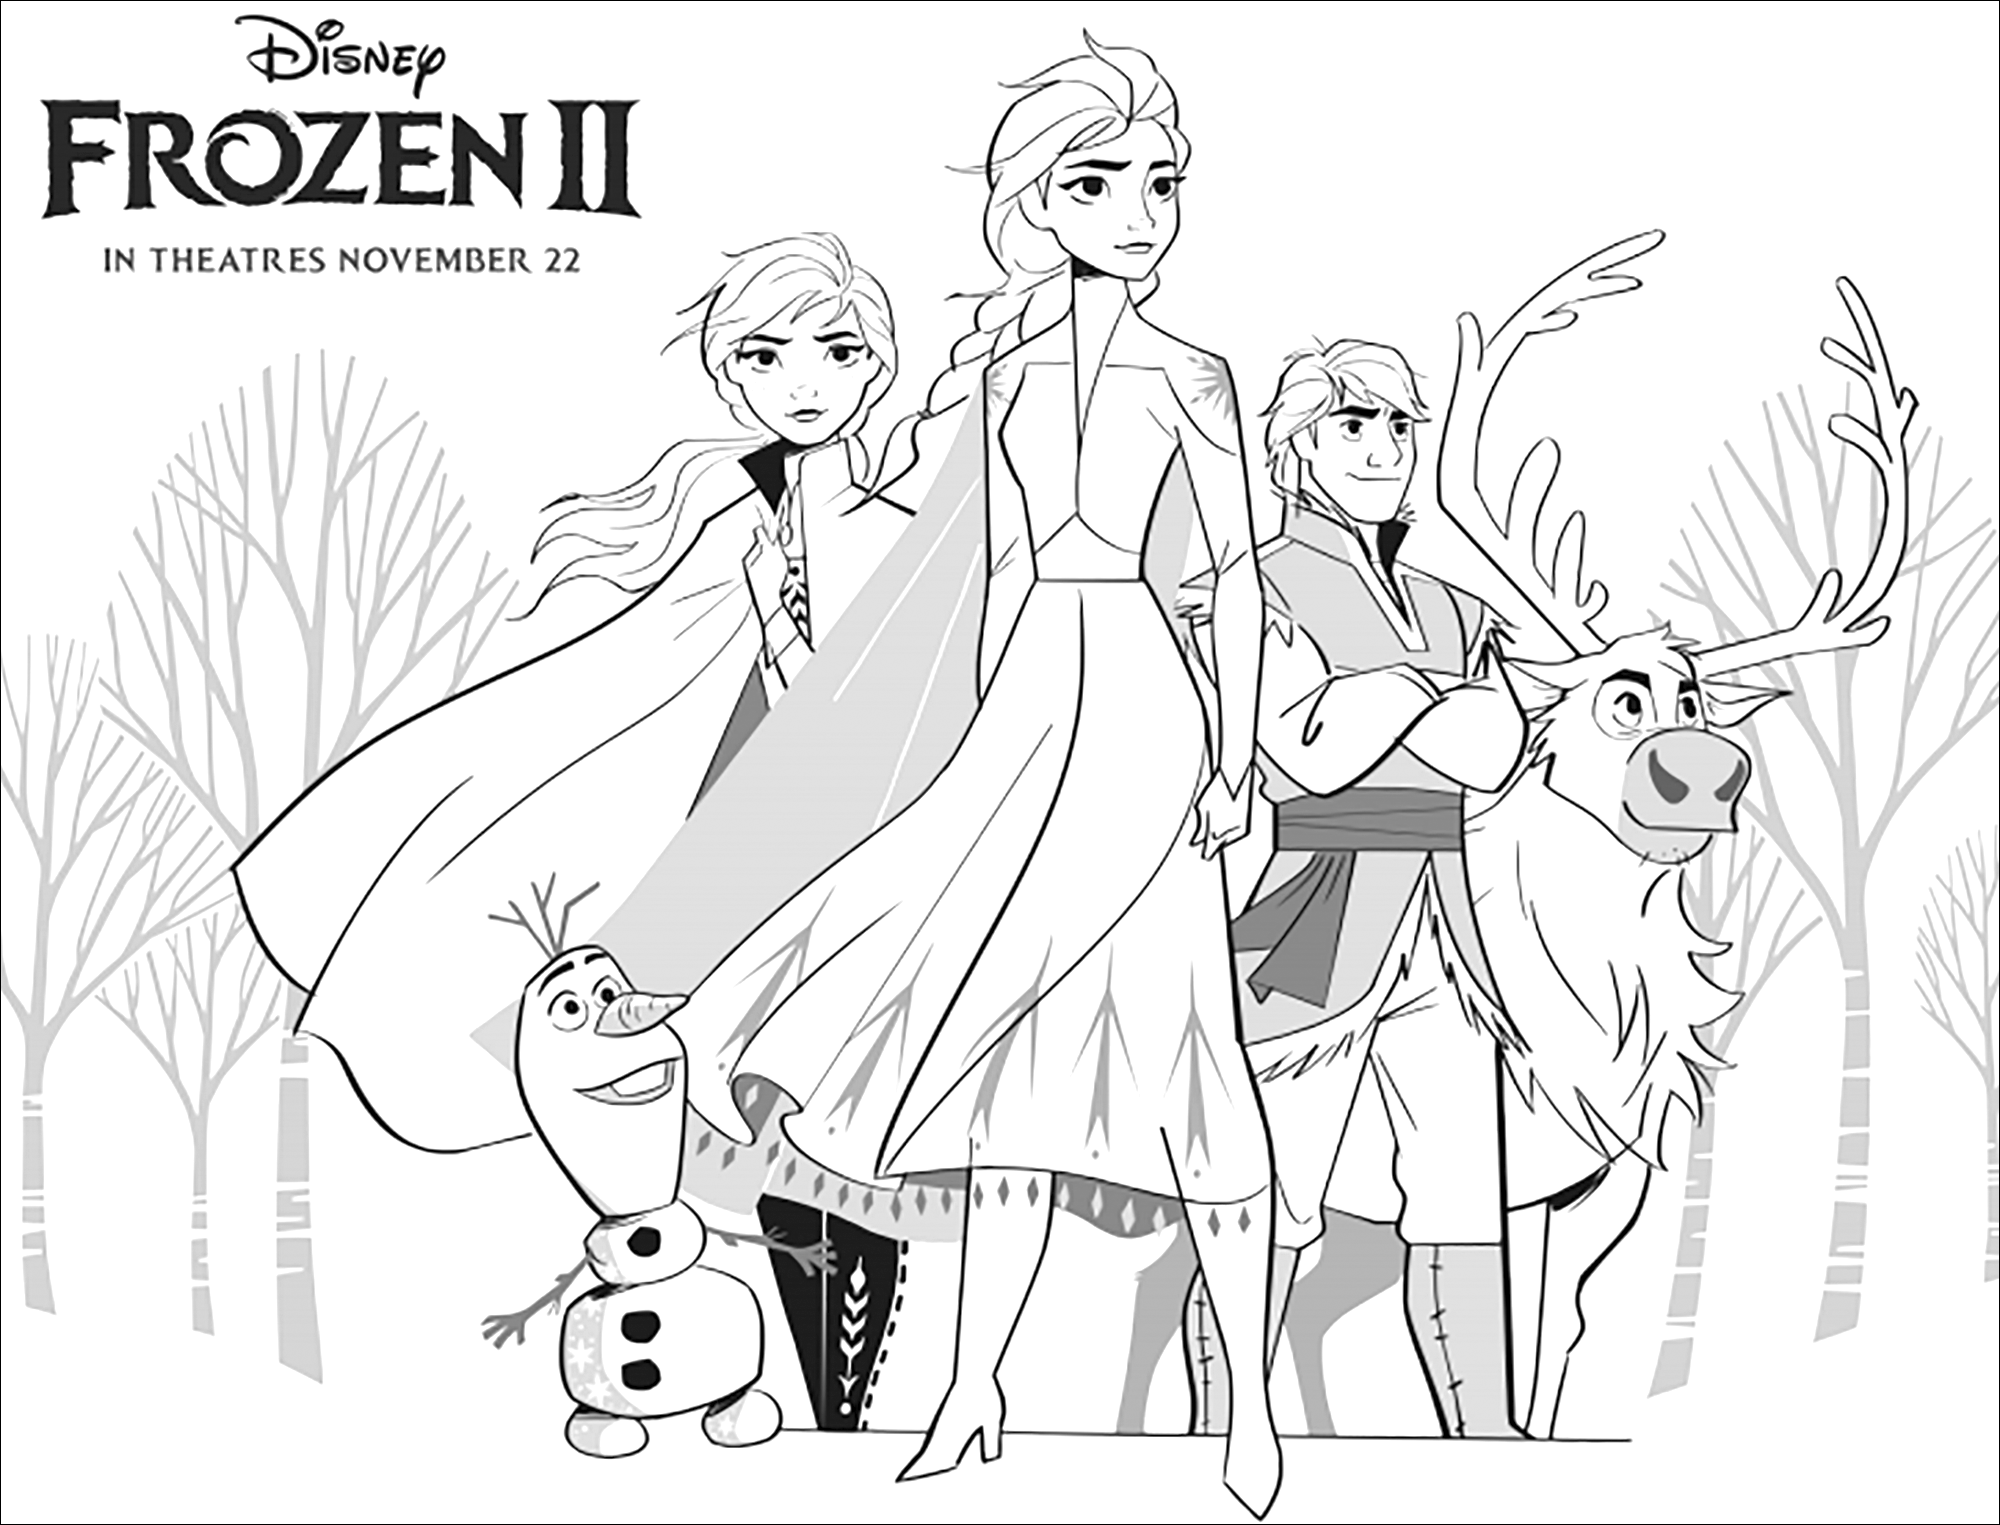 Printable Frozen 2 coloring page to print and color for free with Elsa, Anna, Olaf, Sven and Kristoff